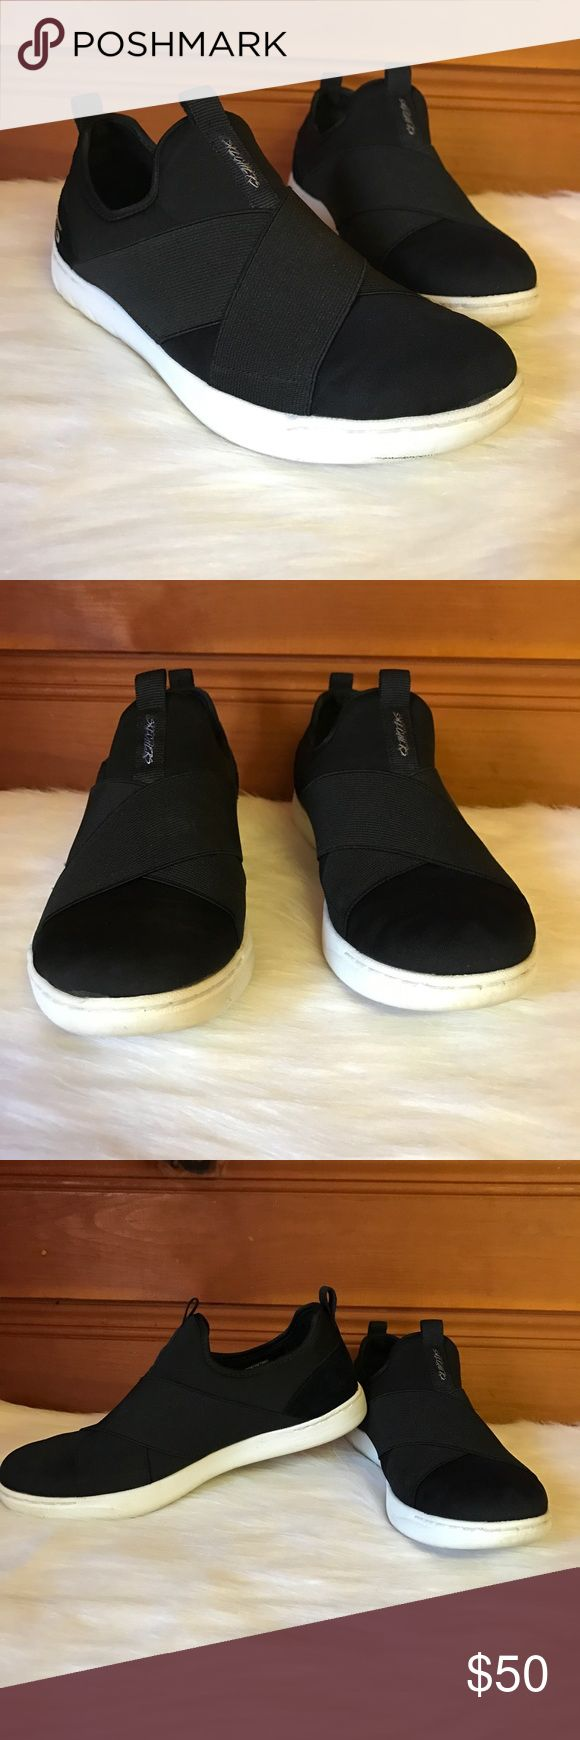 Skechers Memory Foam Sneakers Sketchers Sneakers size 7.5 in Woman's. Hey are Air Cooler Memory Foam. Like New and worn One Time. Have a Sporty Wrap Design on them. Bundle 2 or more items and save 15%! 🎁 Skechers Shoes Sneakers